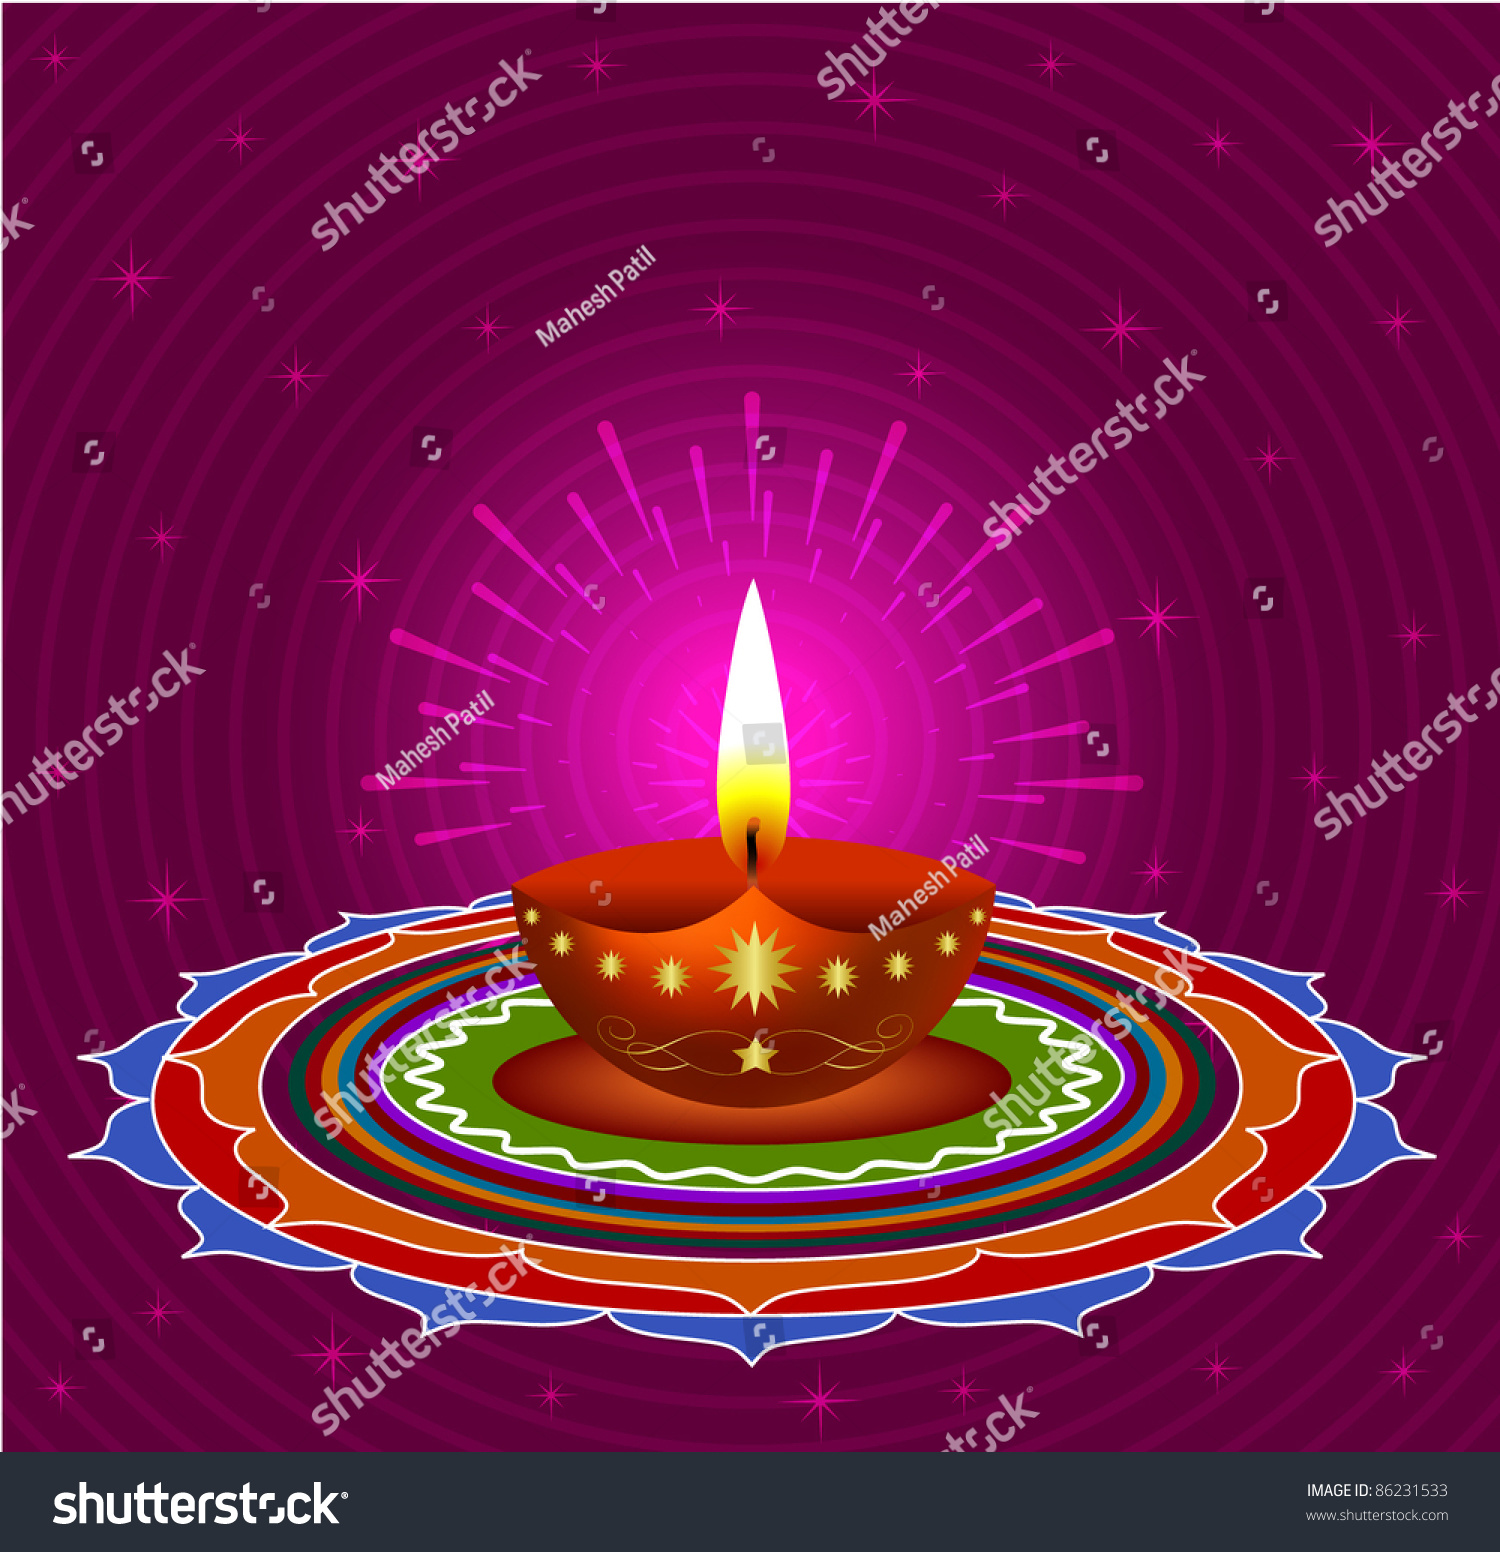 glowing diwali lamps on decorative background eps10 vector - Decorative Lamps